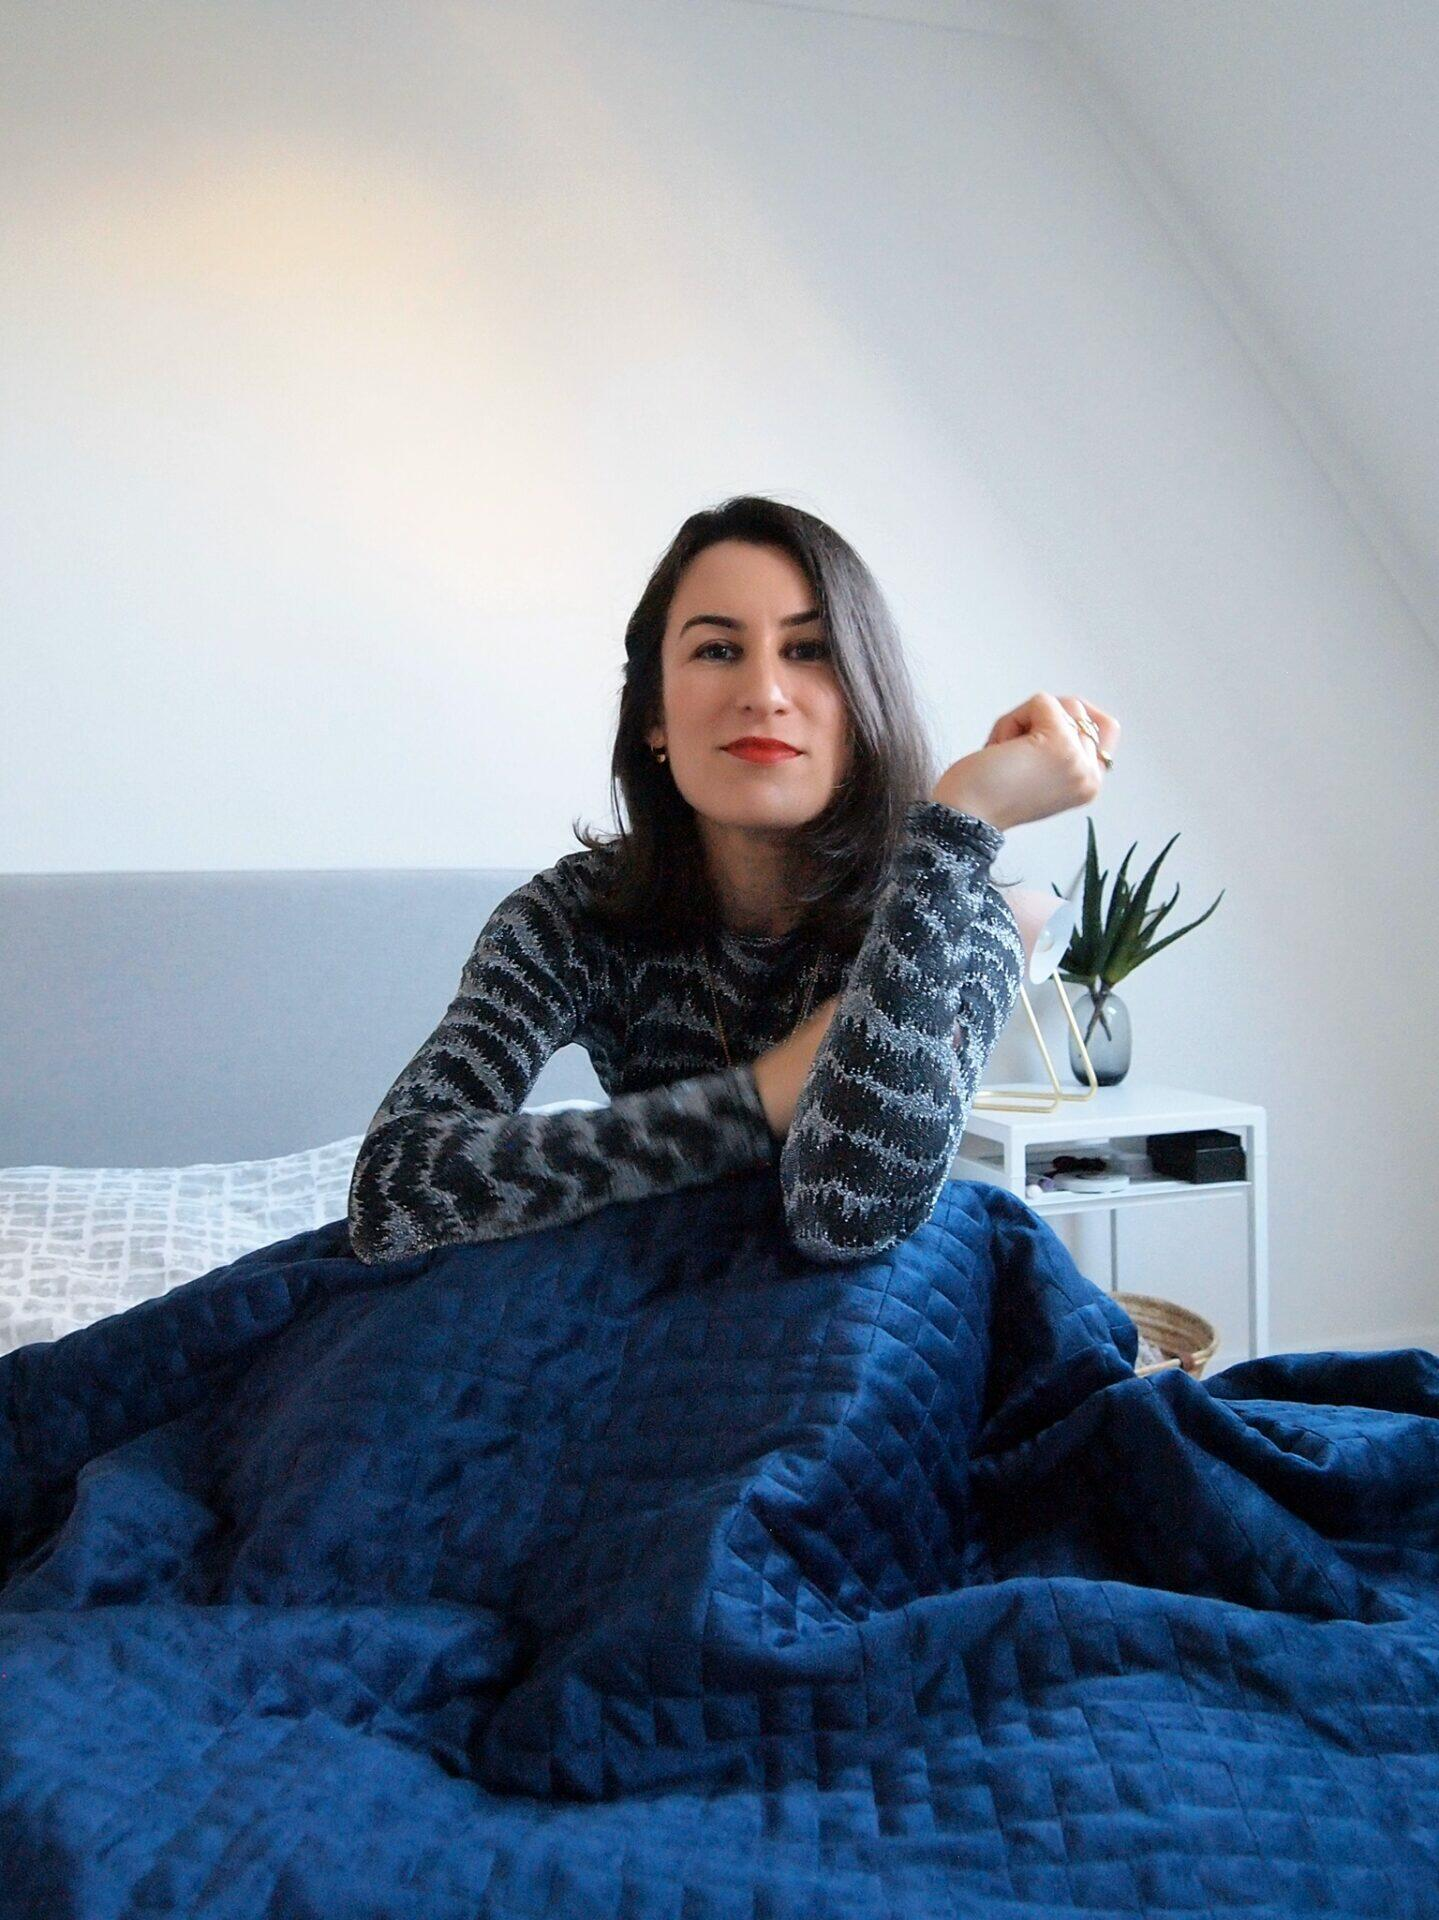 Remy weighted blanket